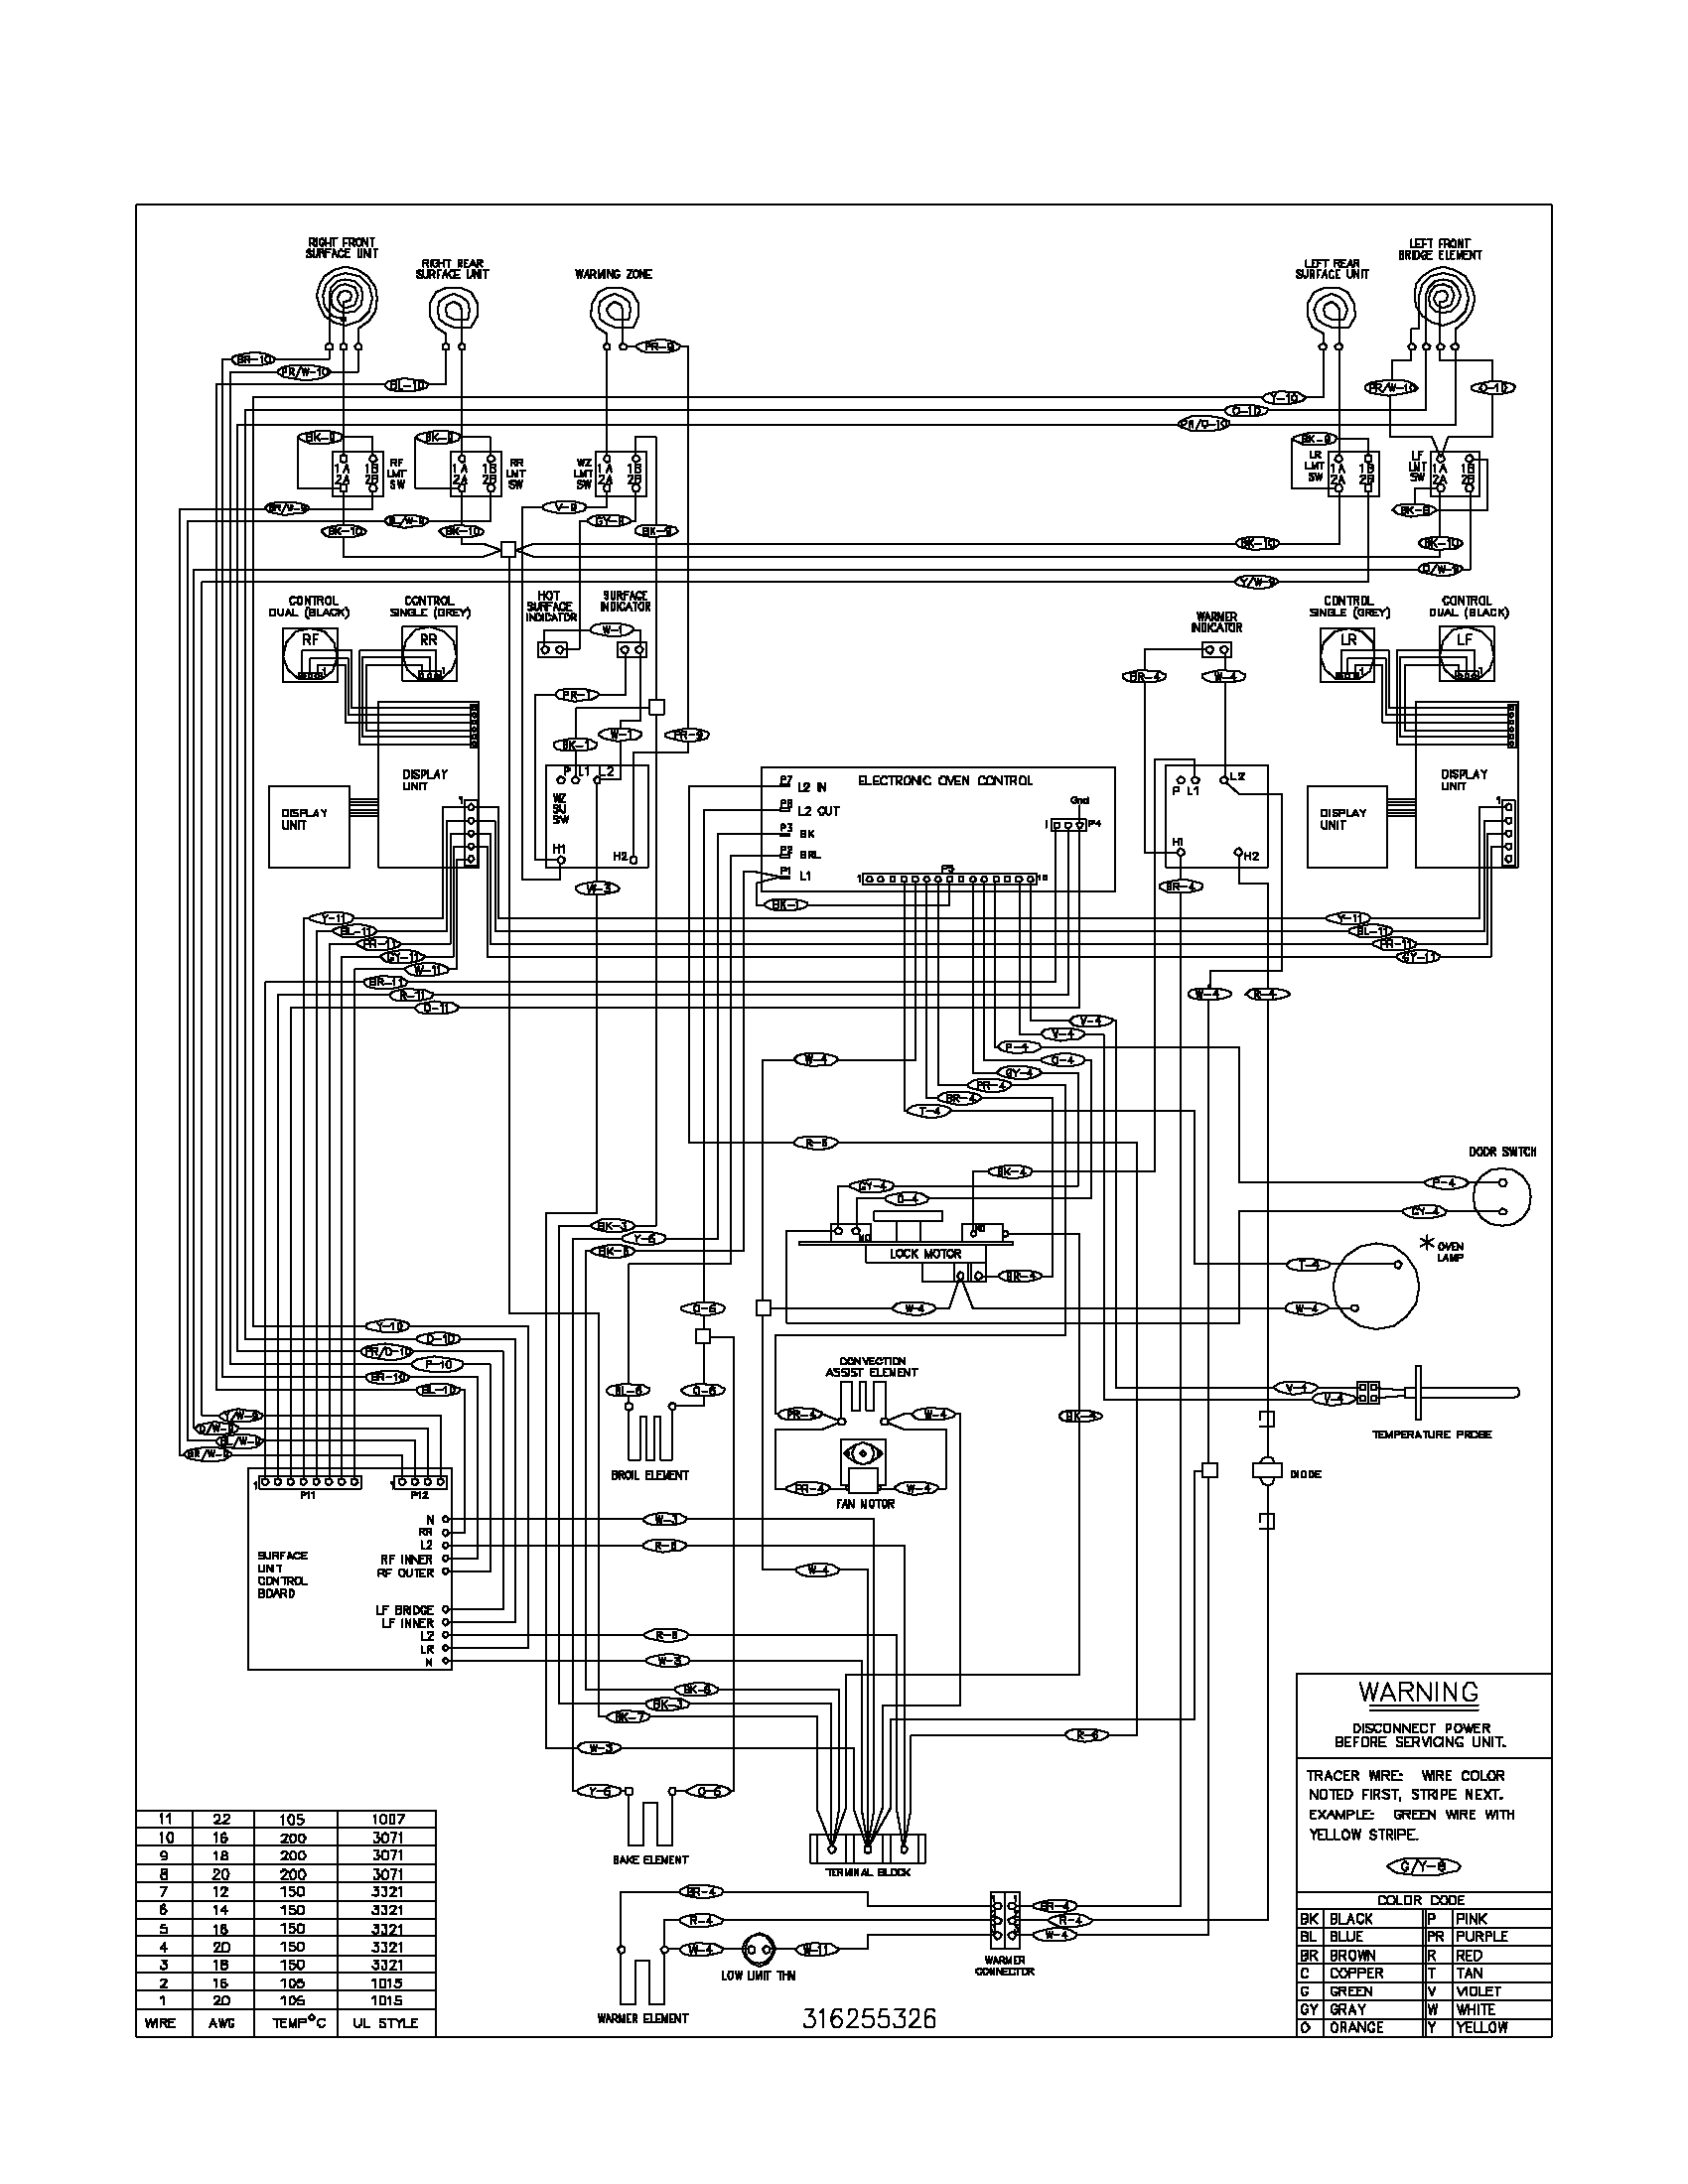 wiring diagram for electric range  u2013 readingrat net